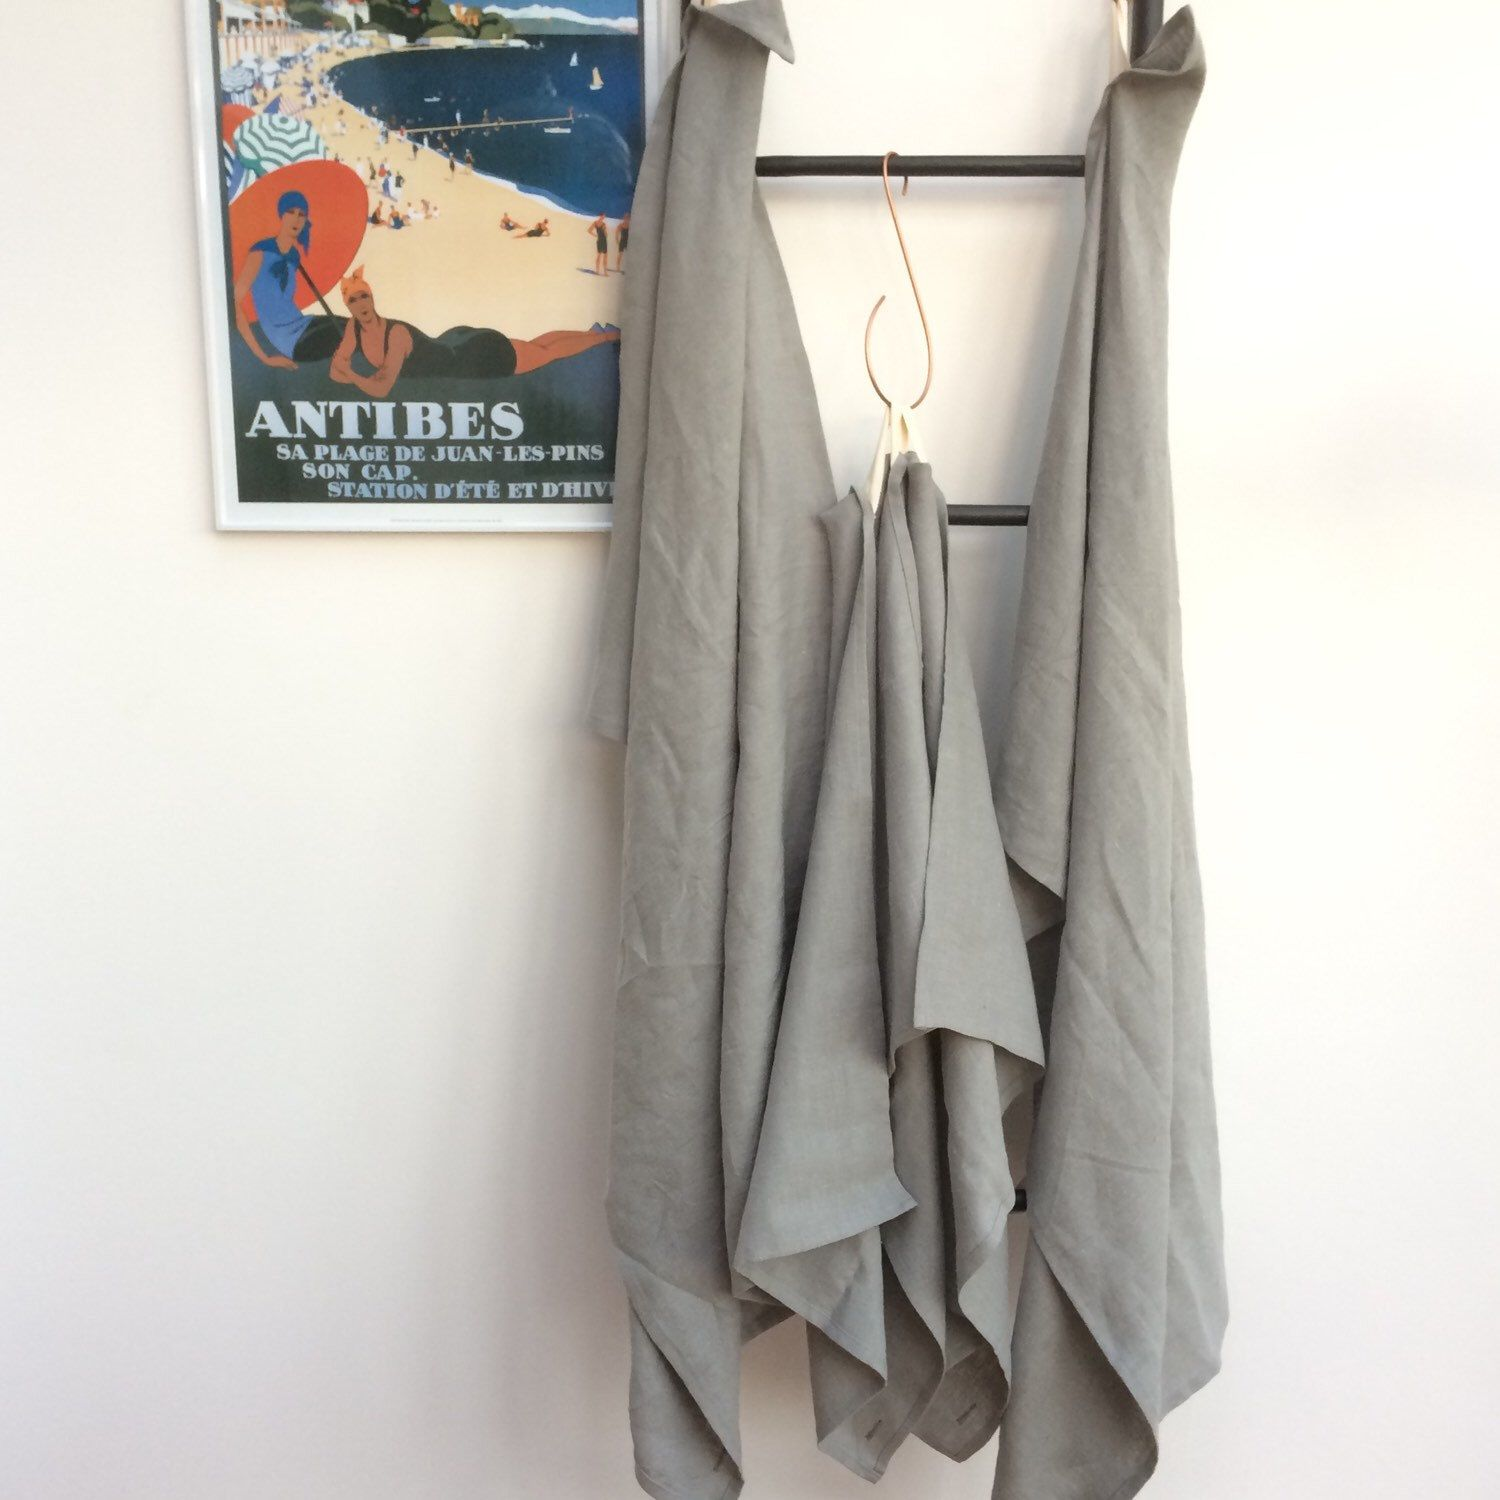 •NEW•  100% Linen Towels - These are just perfect for the bathroom, travel, beach & the gym•